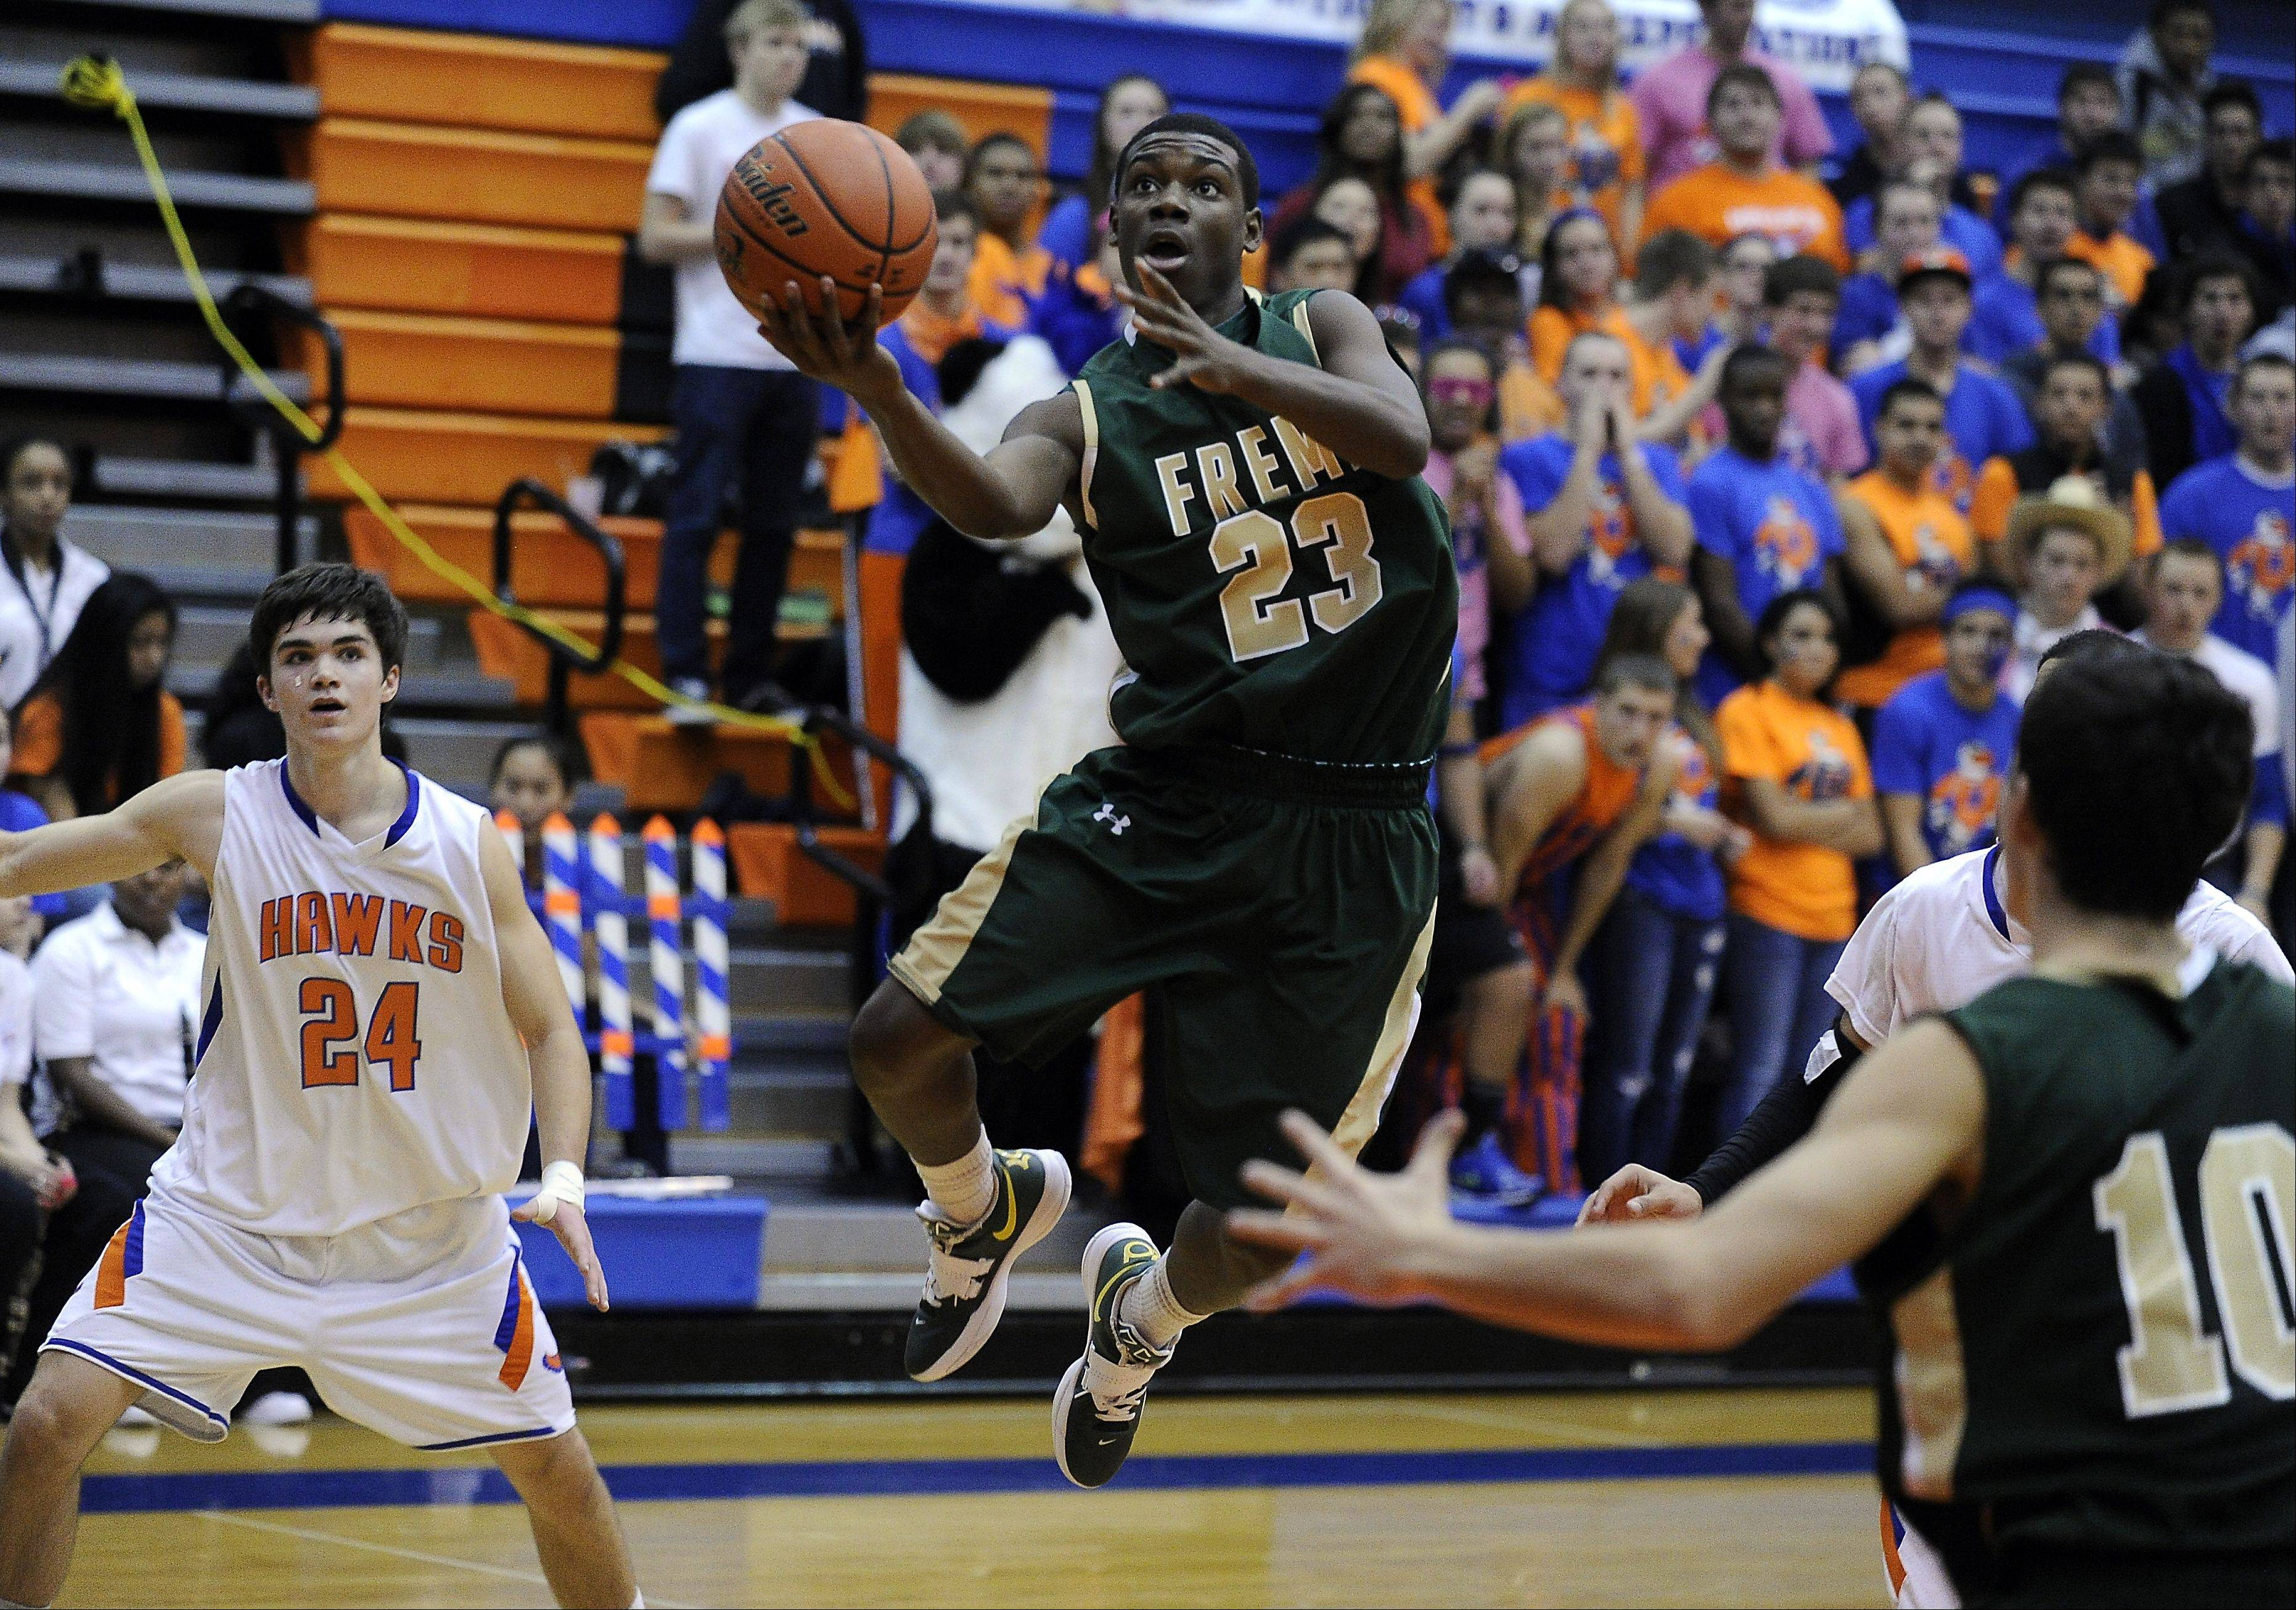 Fremd's Jalon Roundy glides through Hoffman's defense and goes airborne for the bucket against Hoffman Estates.